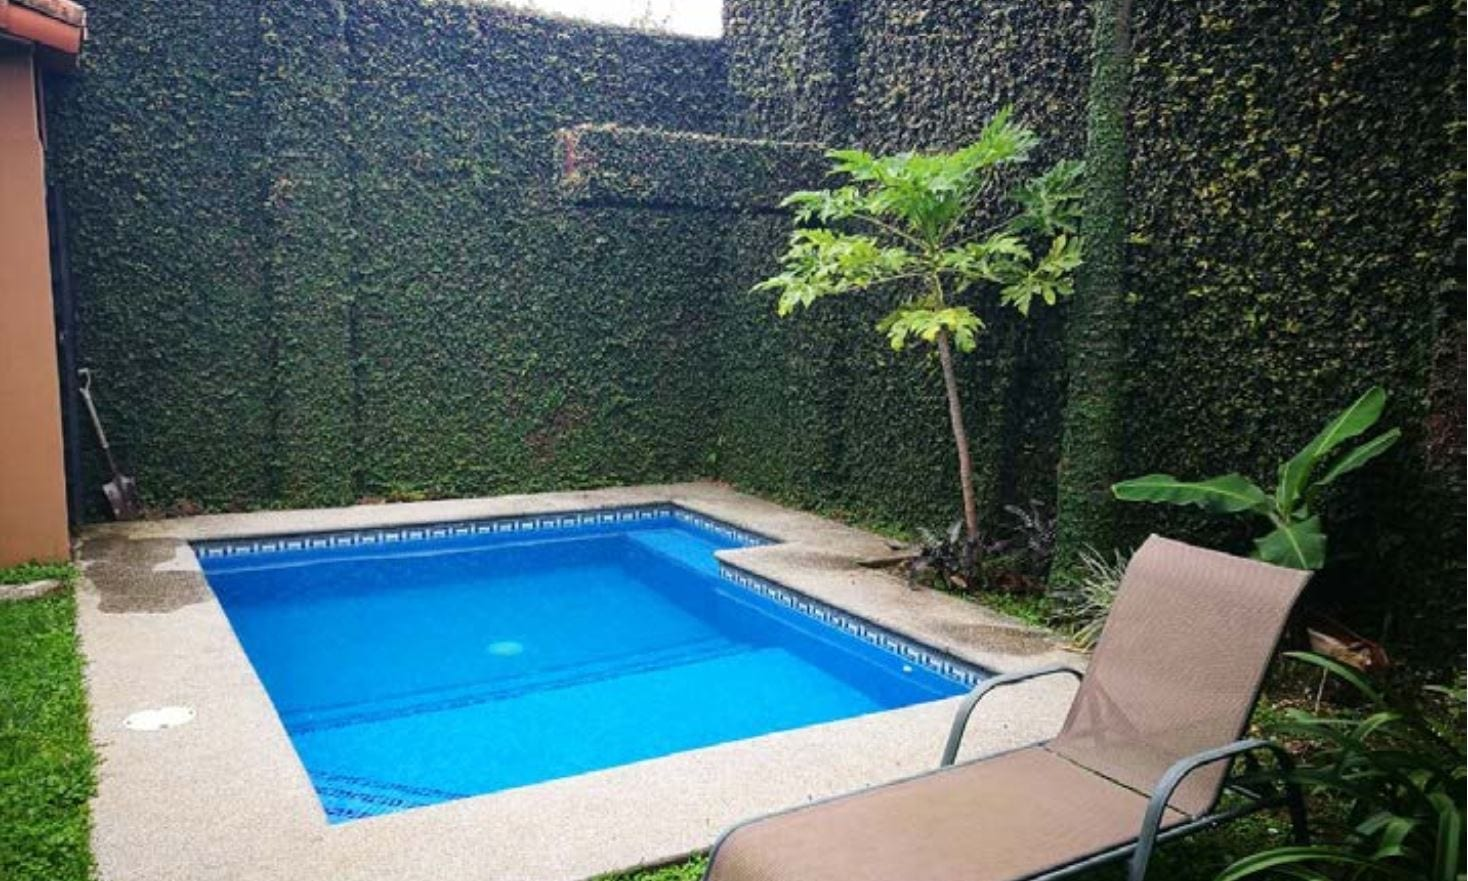 bella condo con piscina privada belen heredia real On piscinas prefabricadas en costa rica